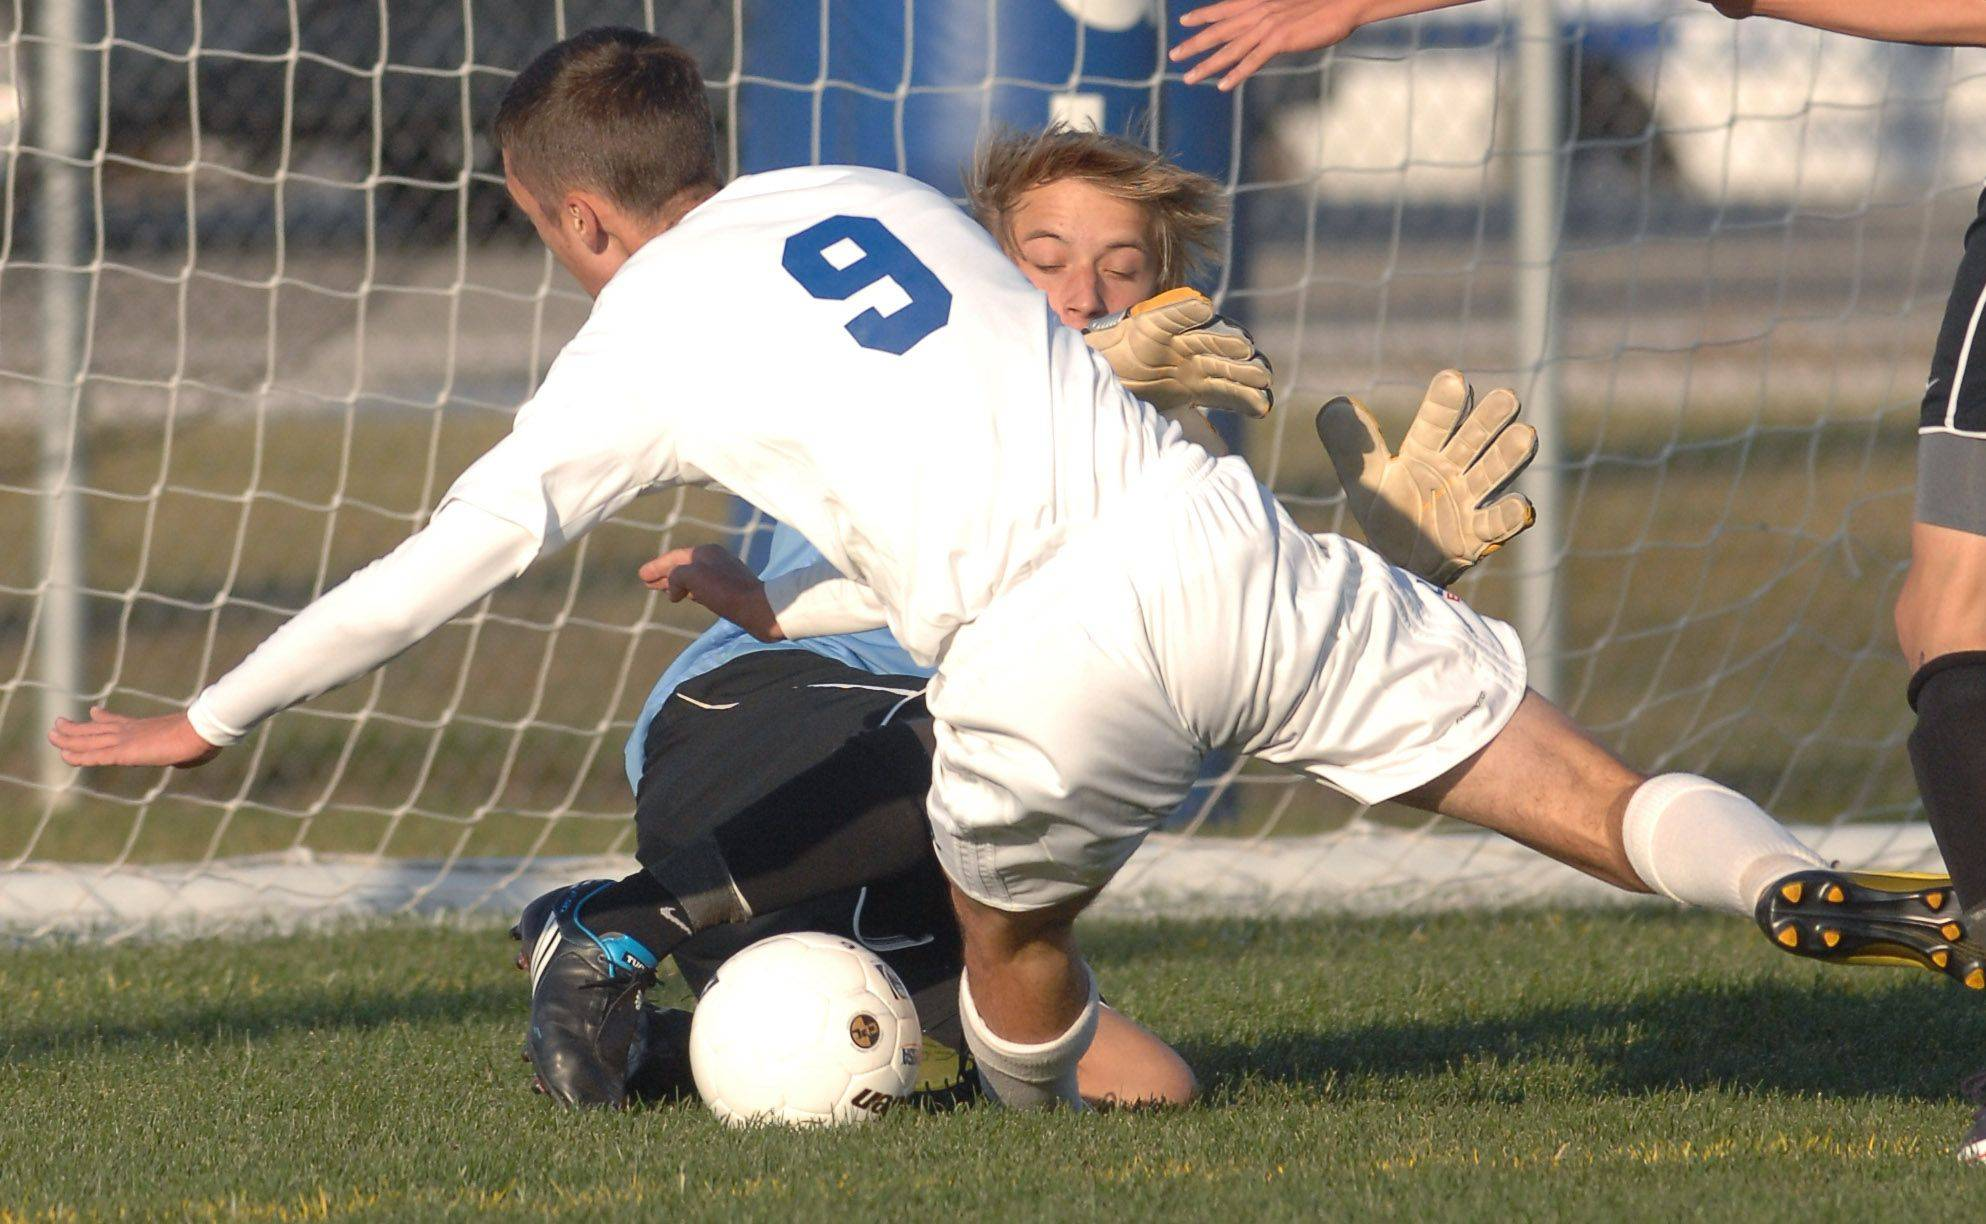 Grayslake North goalkeeper Richard Klarck protects his goal from Lakes' Bojan Zgonjanin, 9, during Tuesday's soccer regional game in Lake Villa.